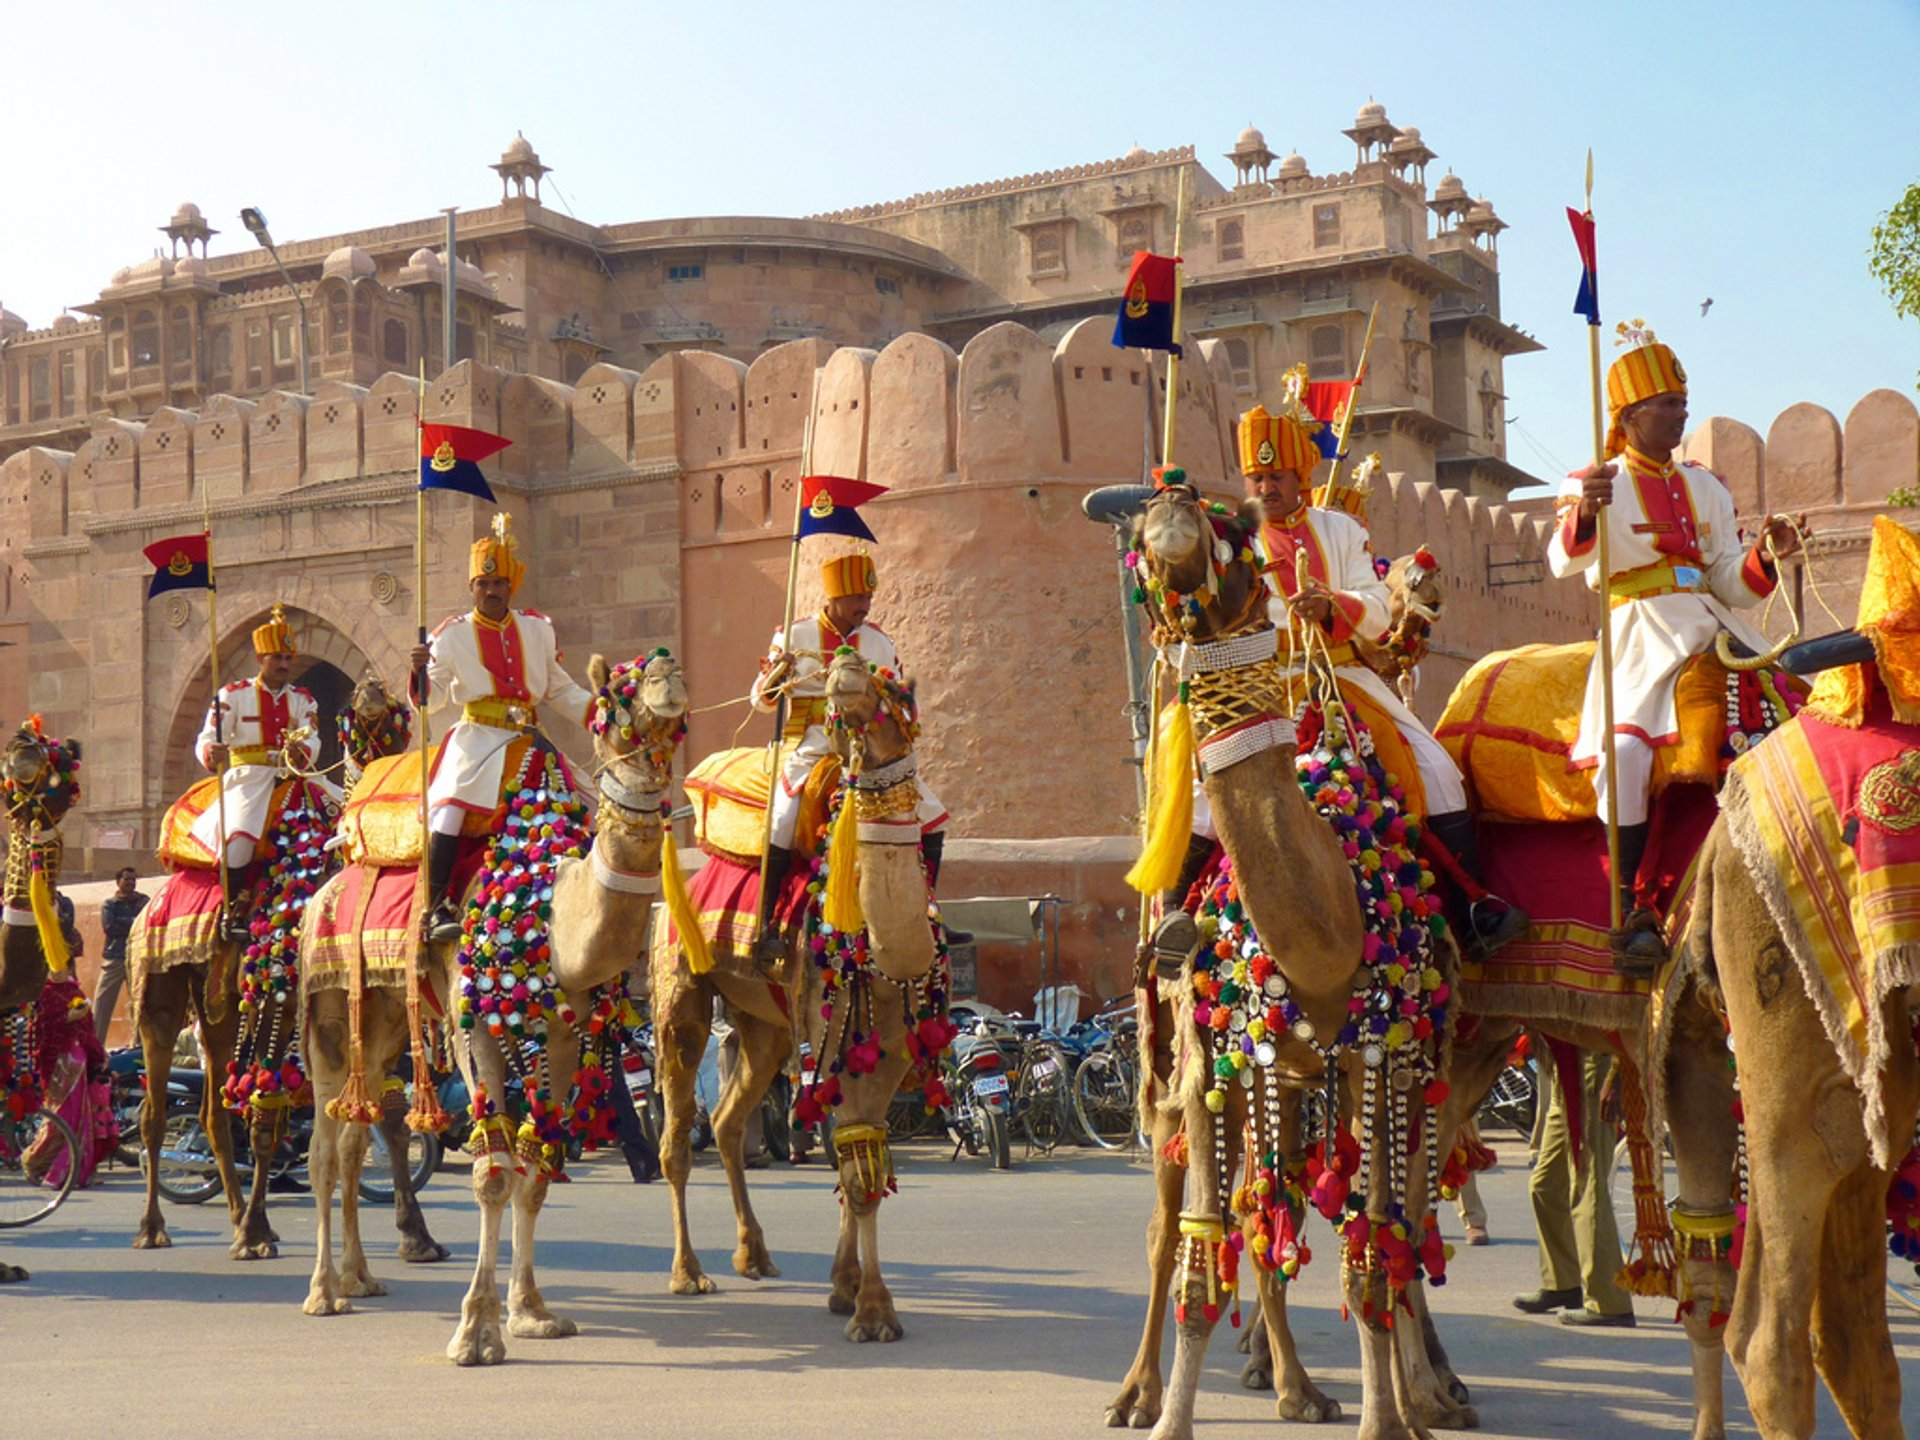 Bikaner Camel Festival in India 2020 - Best Time